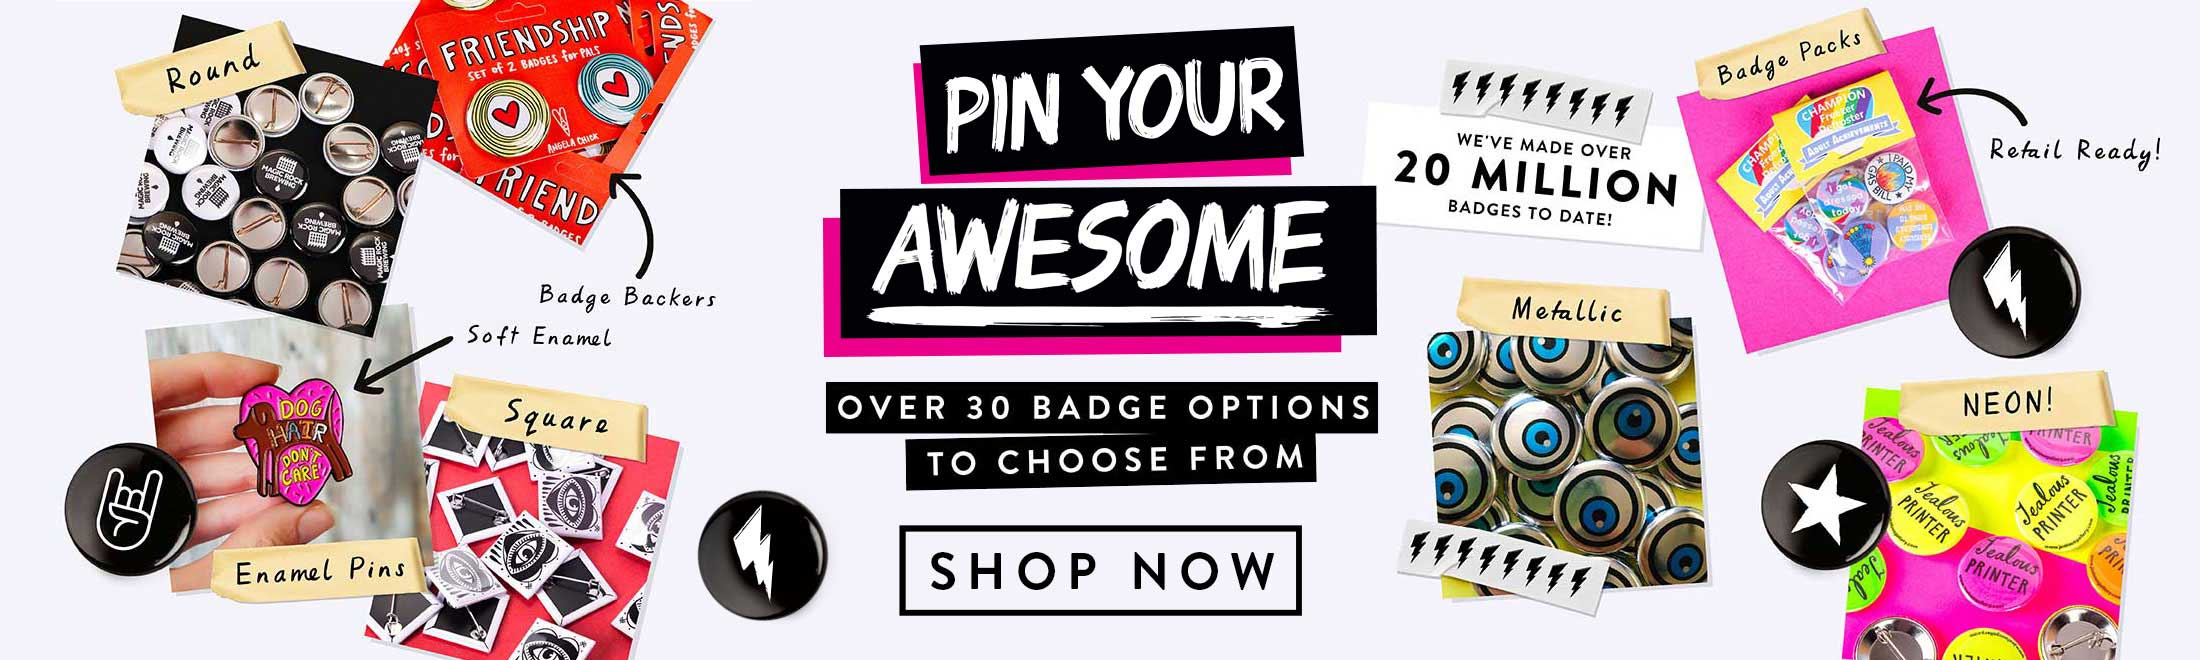 Awesome Badges Slider